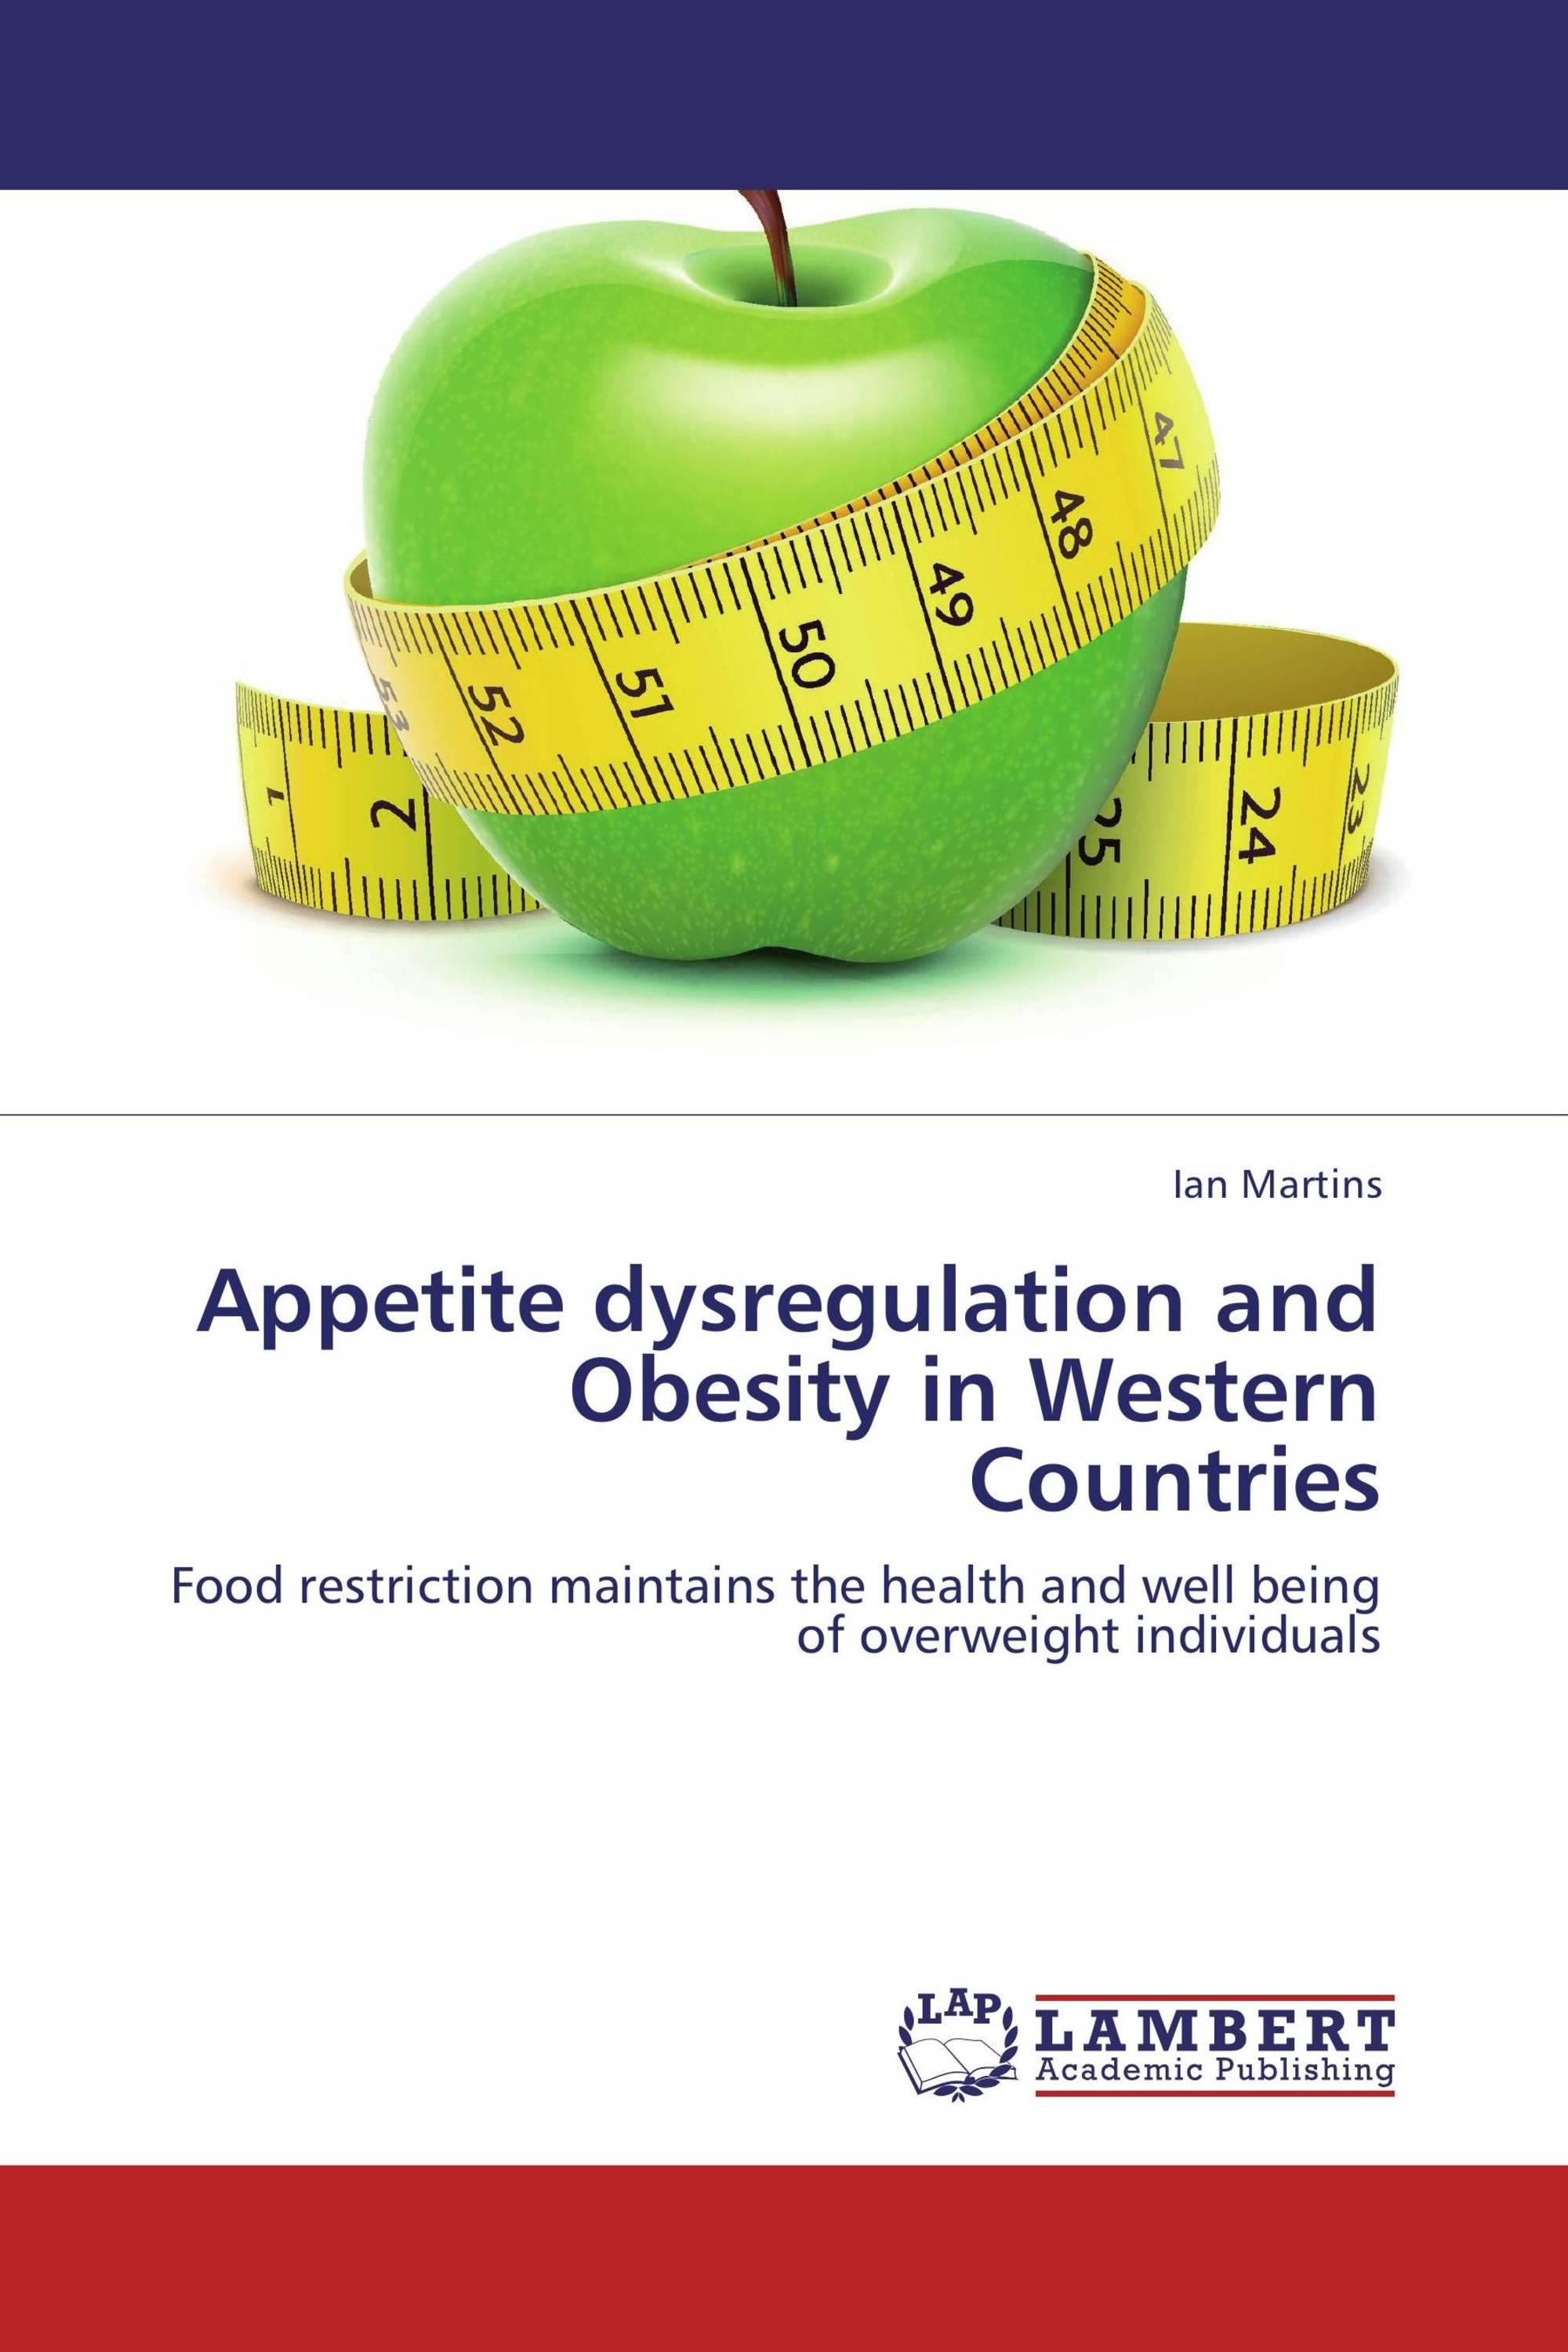 Appetite dysregulation and Obesity in Western Countries